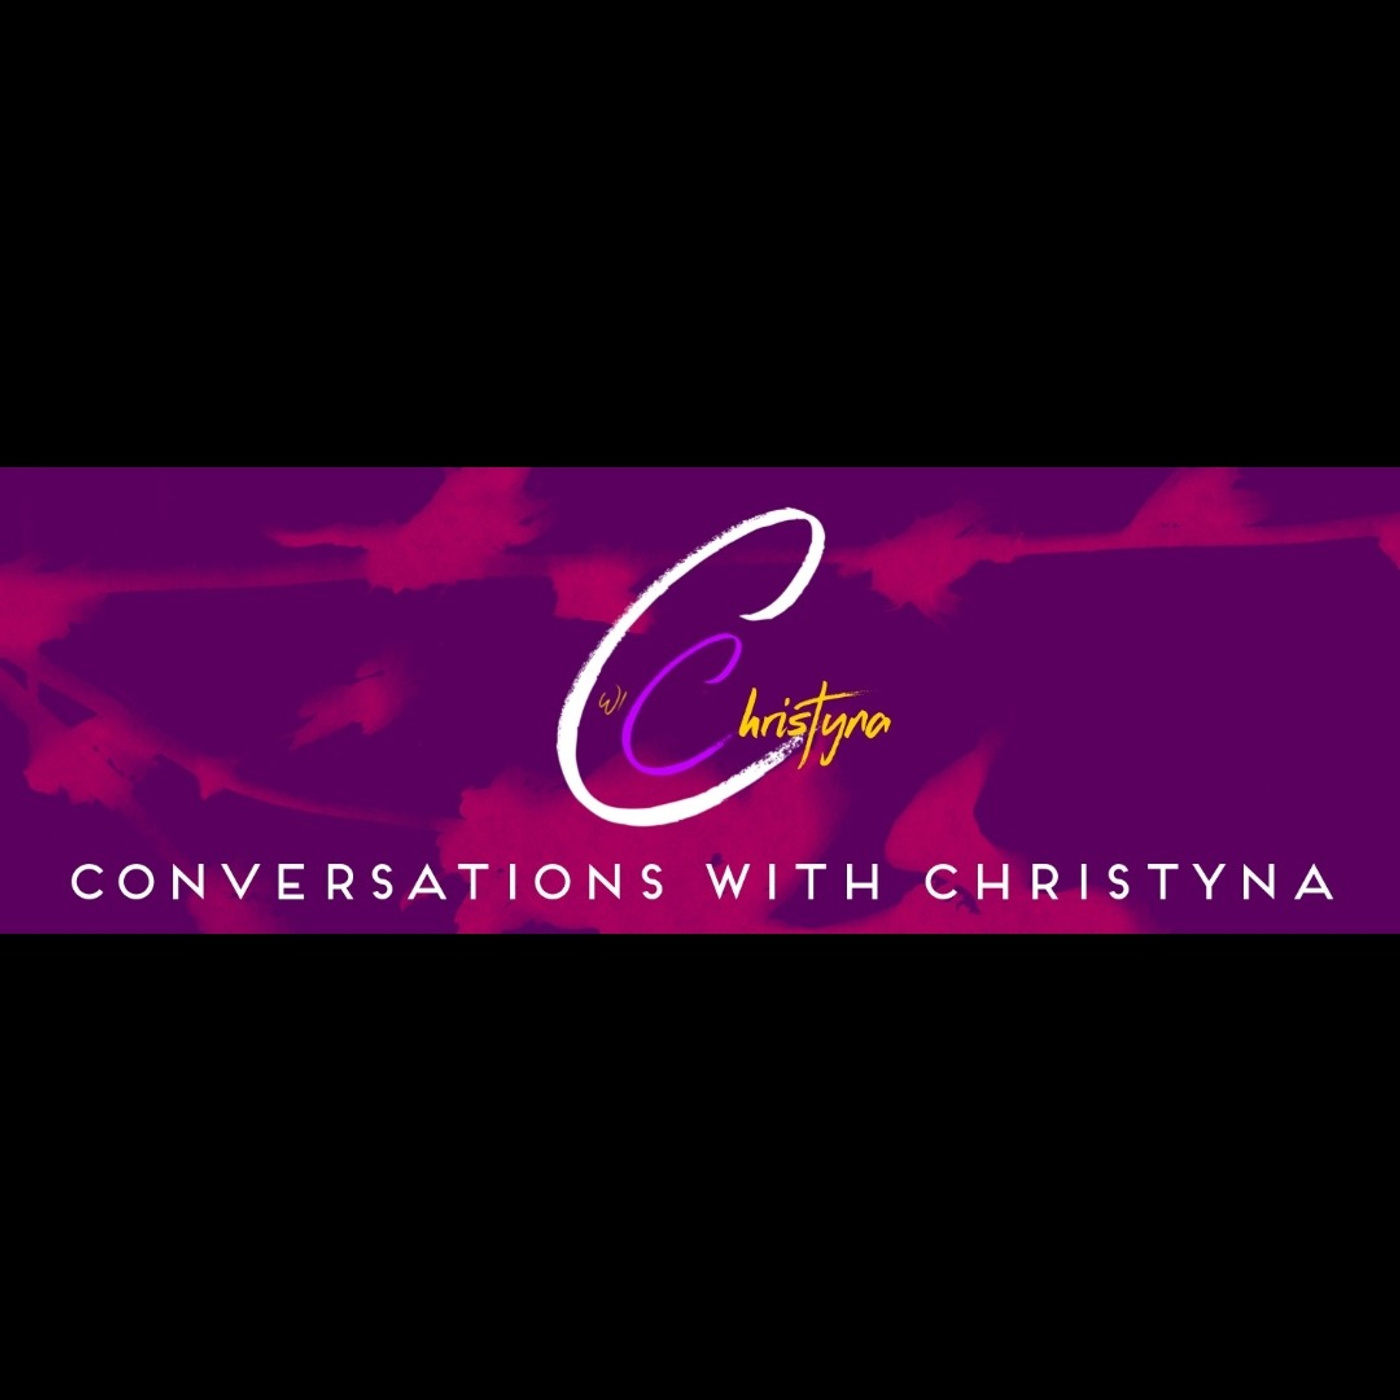 Conversations with Christyna 4.1.2020